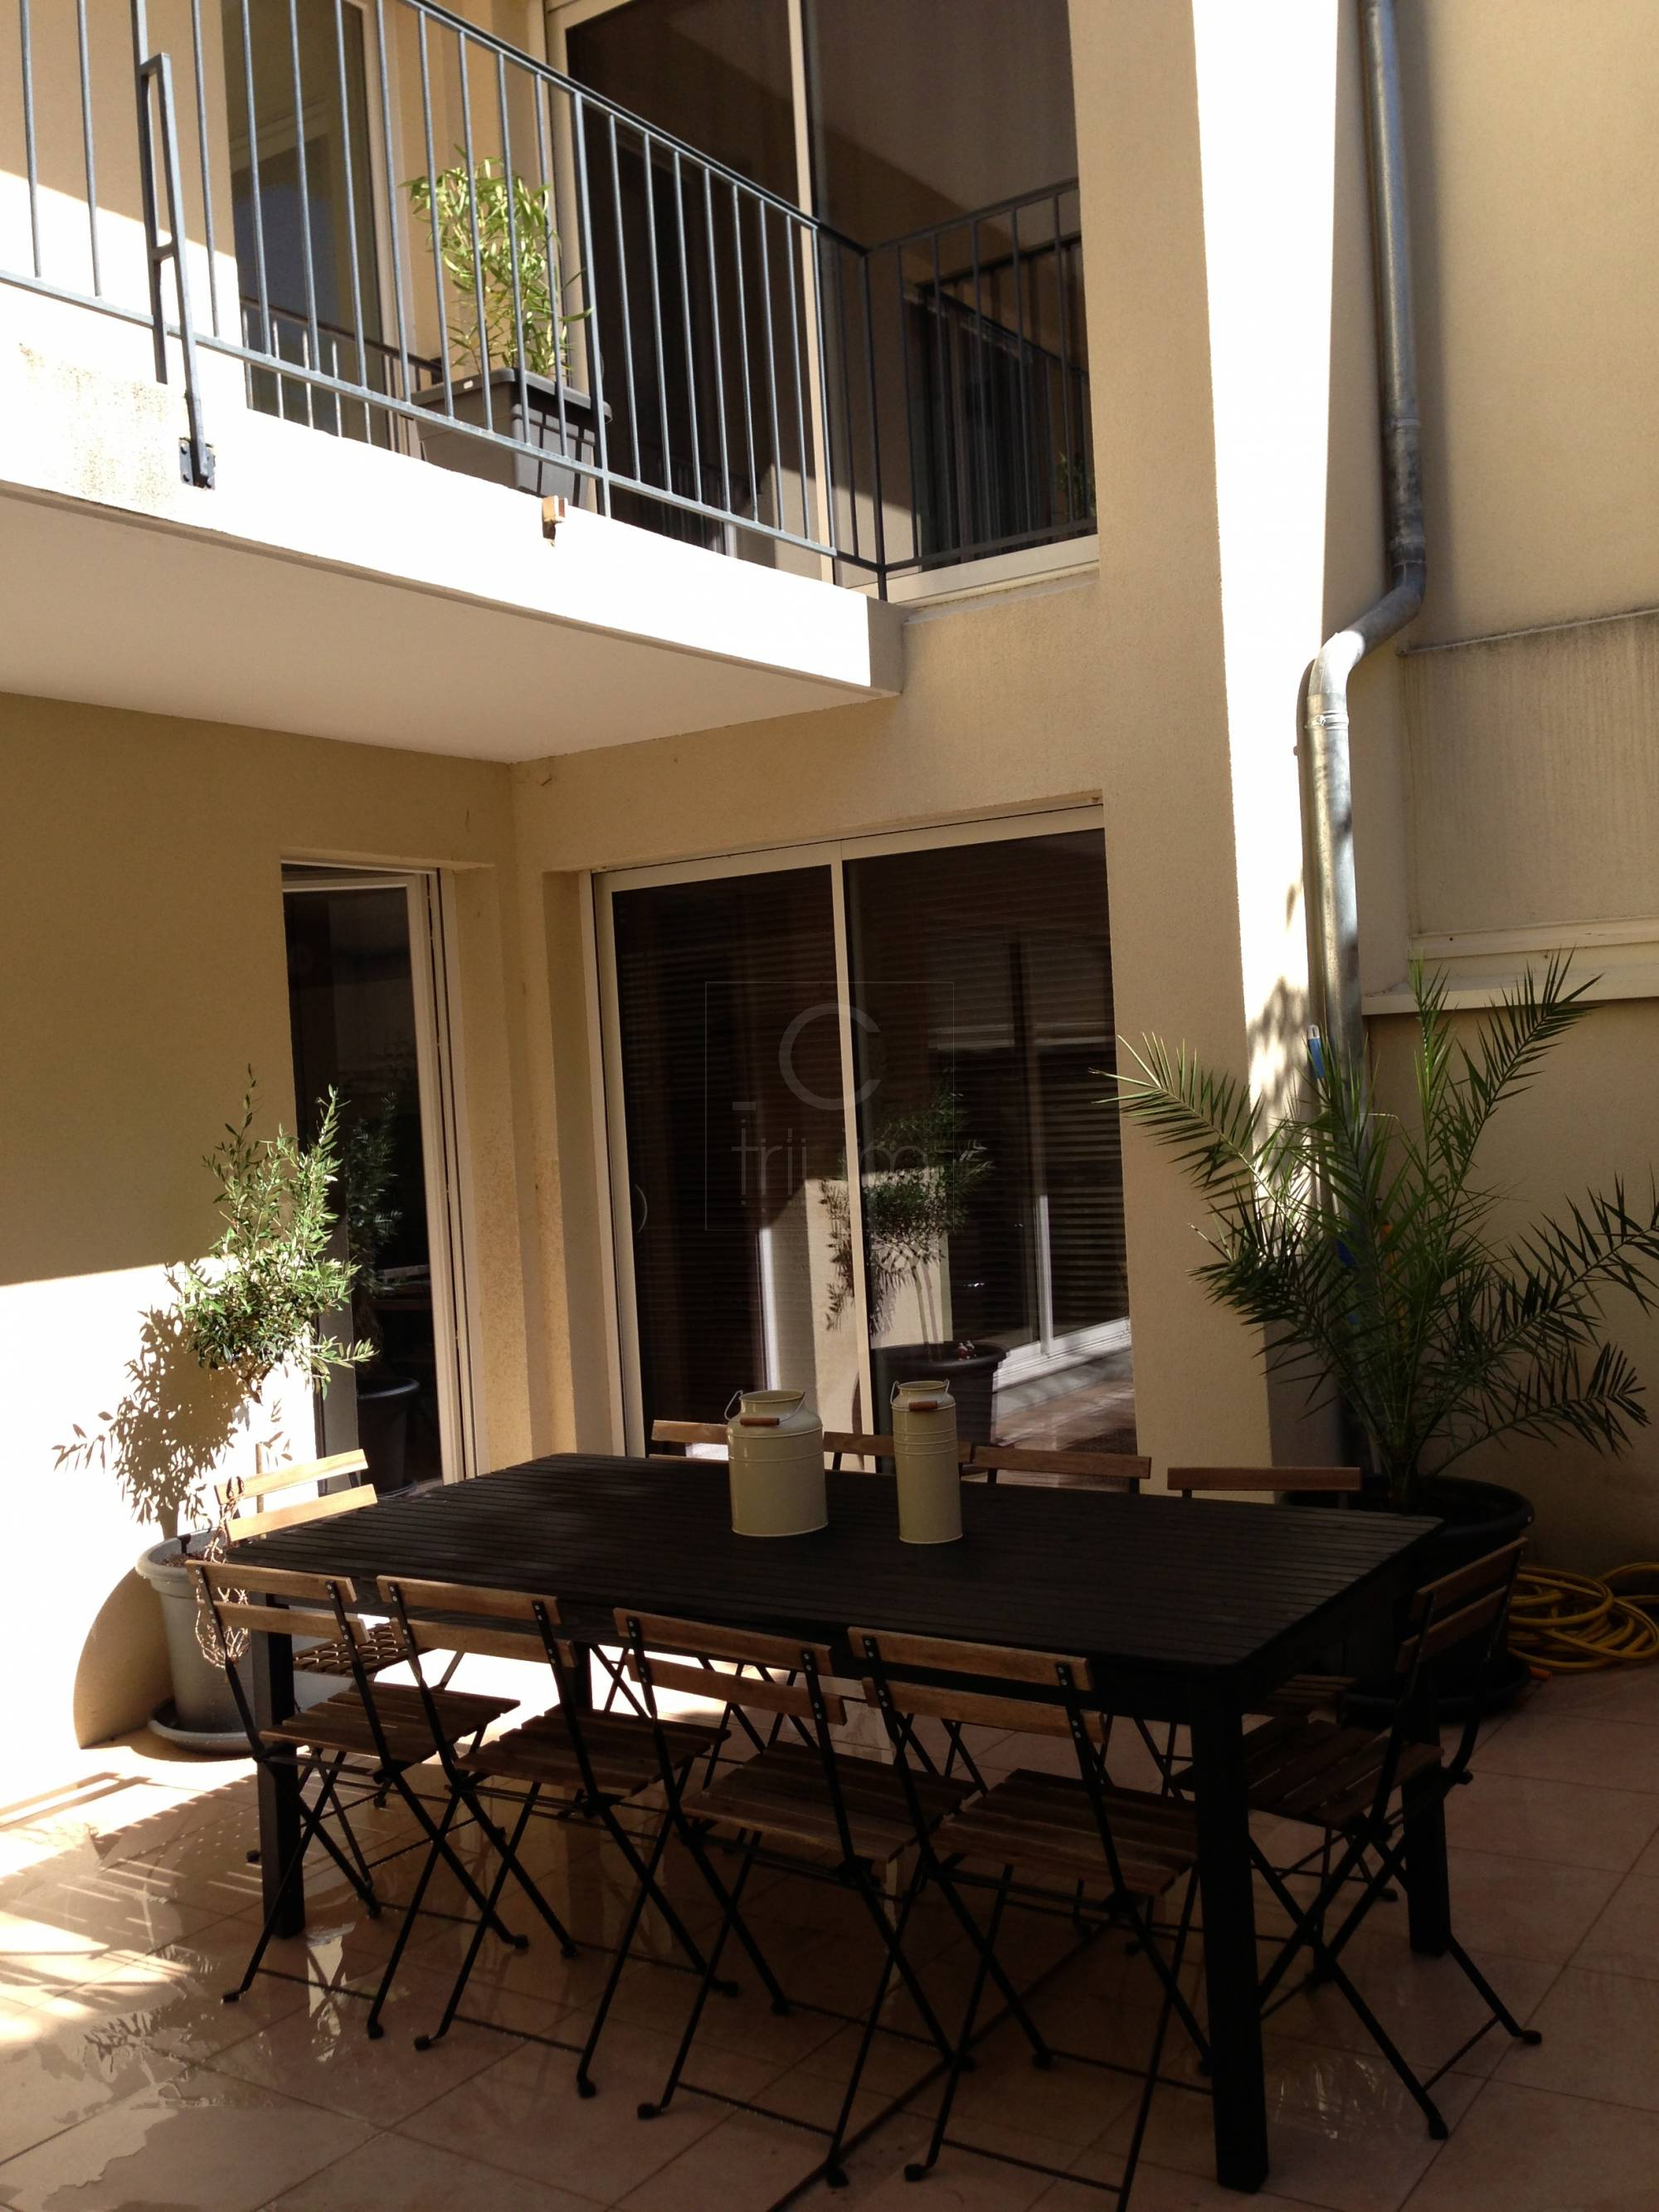 Location appartement t4 f4 marseille 7eme bompard meubl for Location appartement marseille terrasse